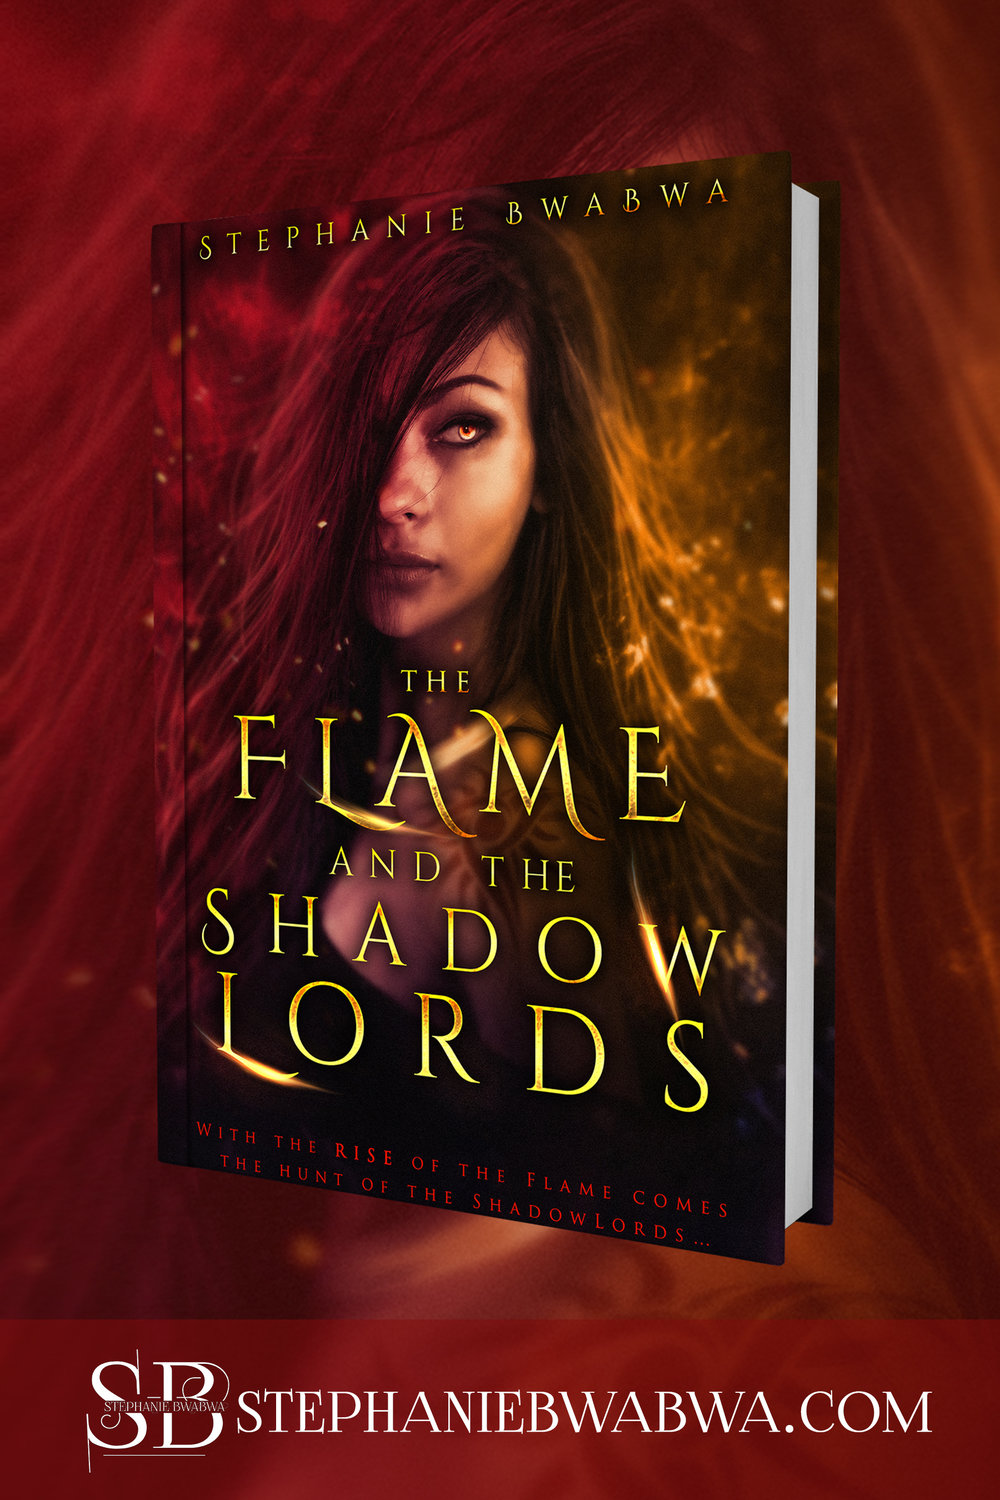 With the rise of the Flame comes the hunt of the Shadowlords. Titaia, a fire spirit, is being hunted by the Shadowlords. She has two options: escape or die. Click through and read now. >> www.stephaniebwabwa.com